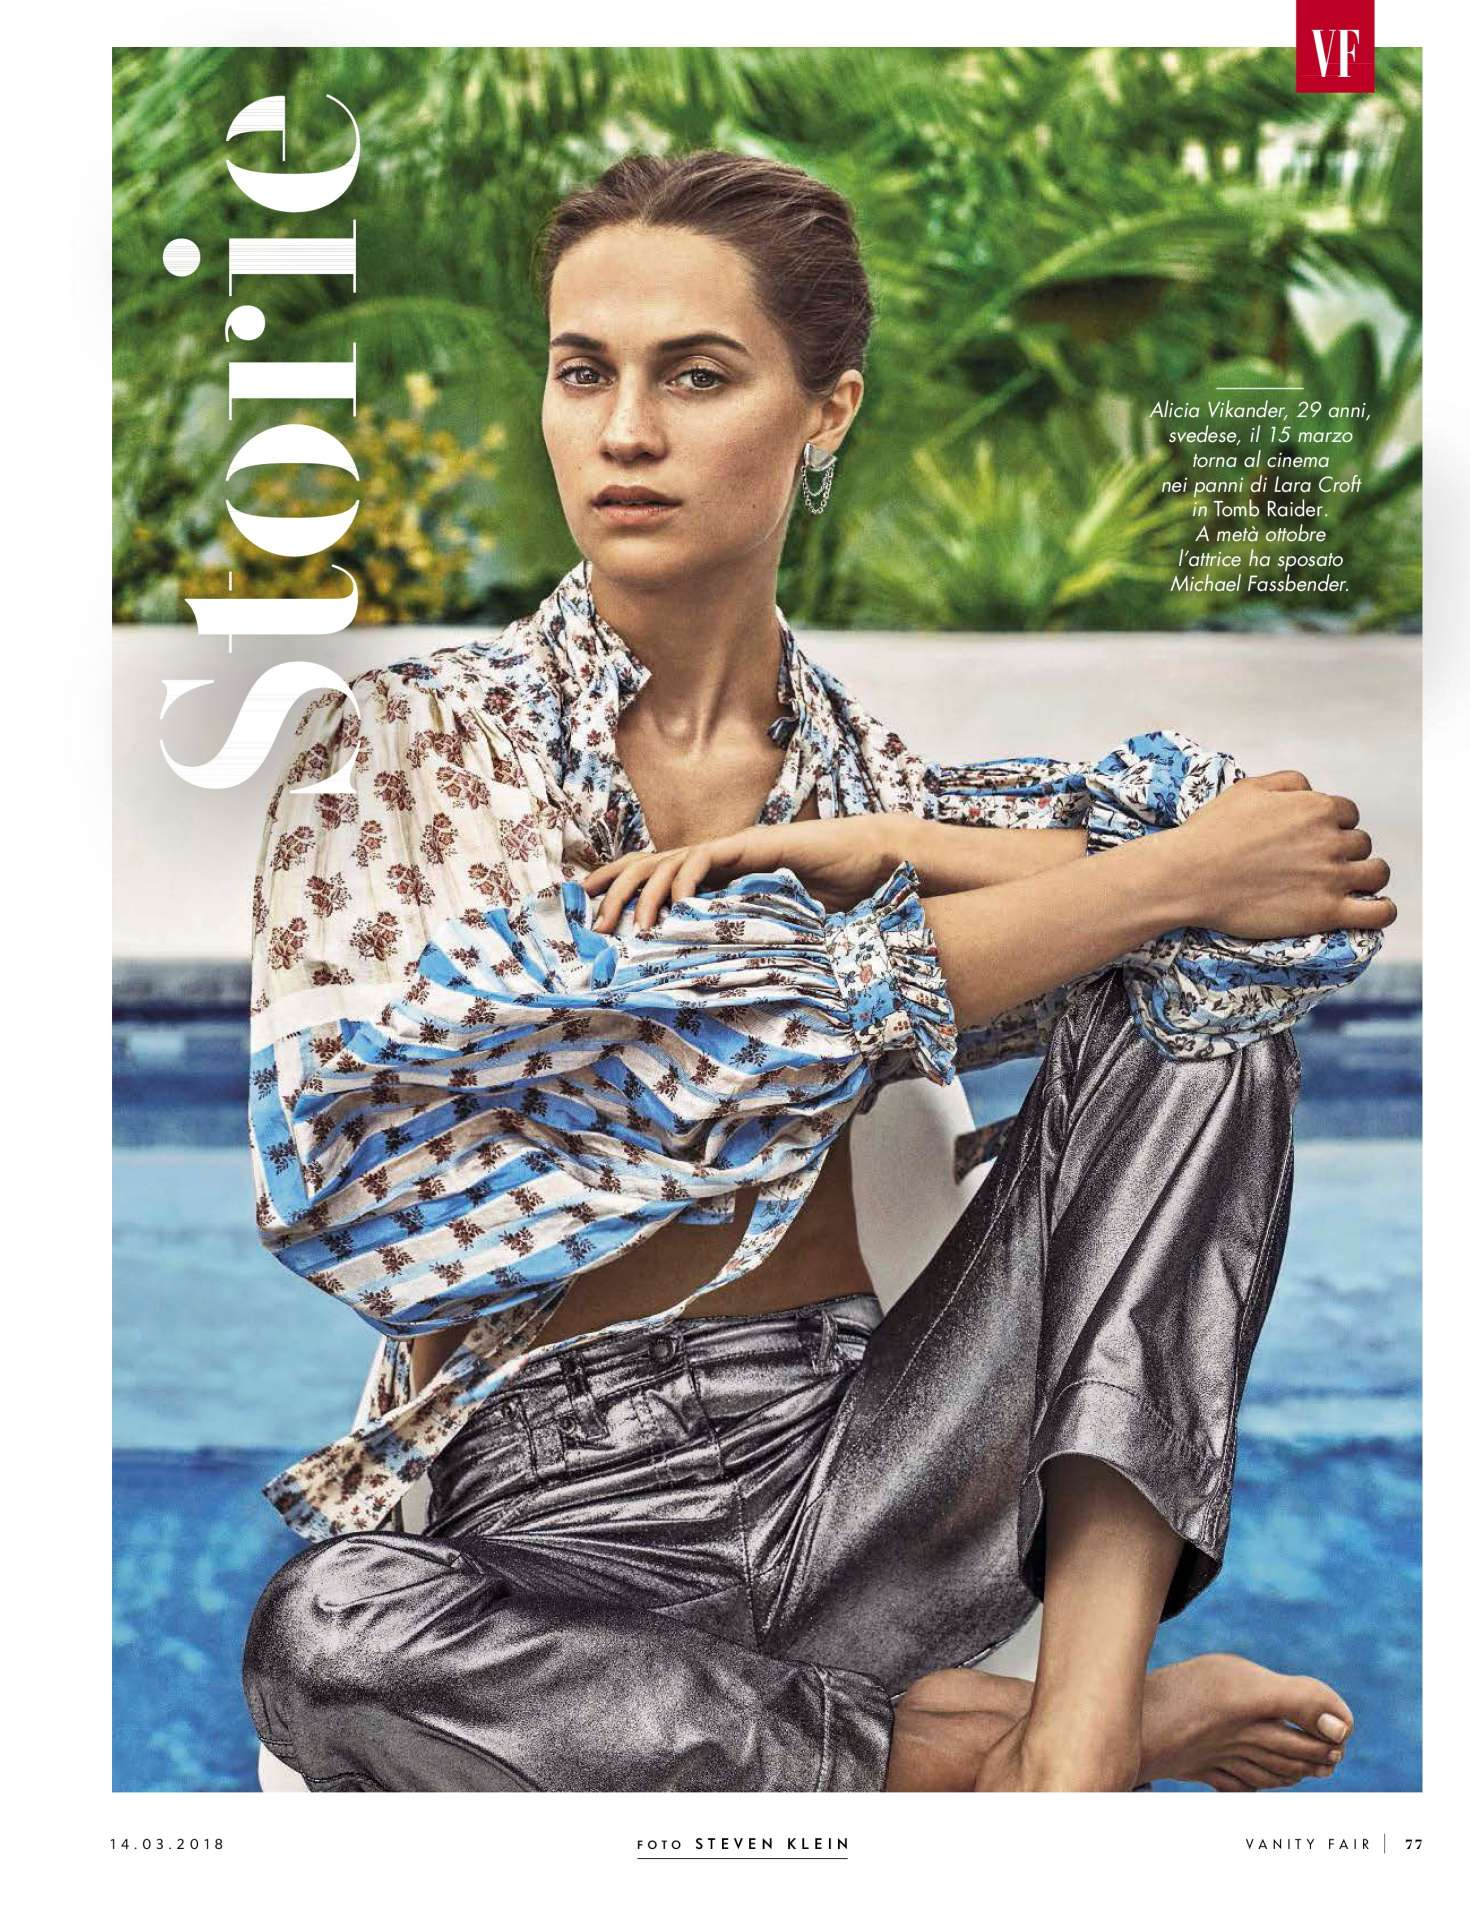 Alicia Vikander Vanity Fair Italy Magazine March 2018